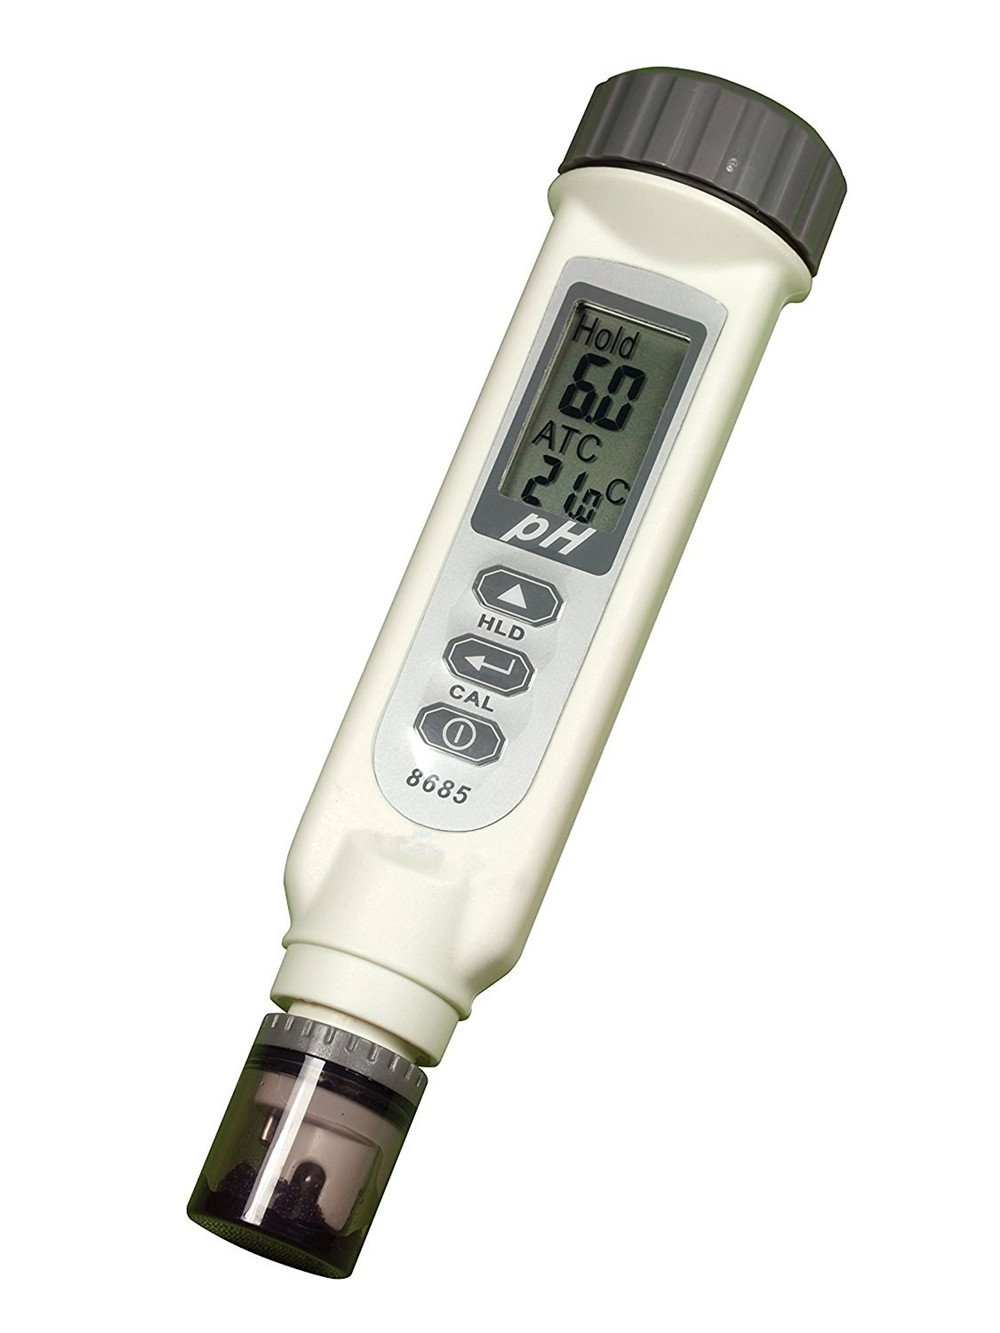 High Quality Digital Waterproof PH Temperature Meter Tester (ATC) with Large LCD Screen One Touch automatic Calibration function, 0.00-14.00 Measurement Range, Model 8685 Eleoption